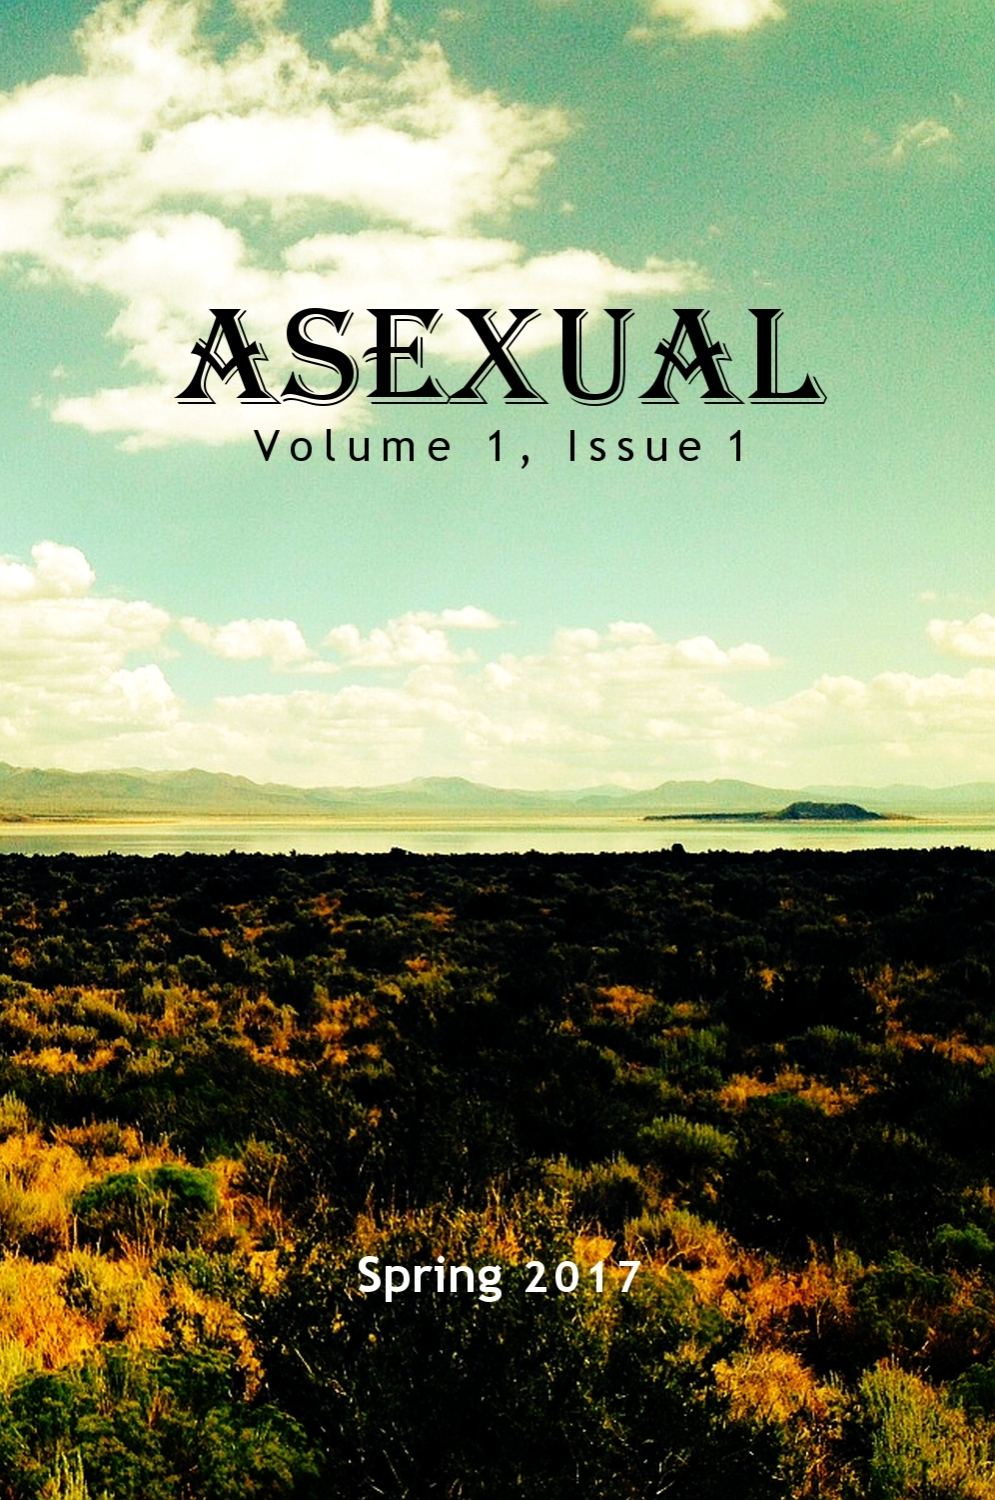 Asexual1Cover.jpg